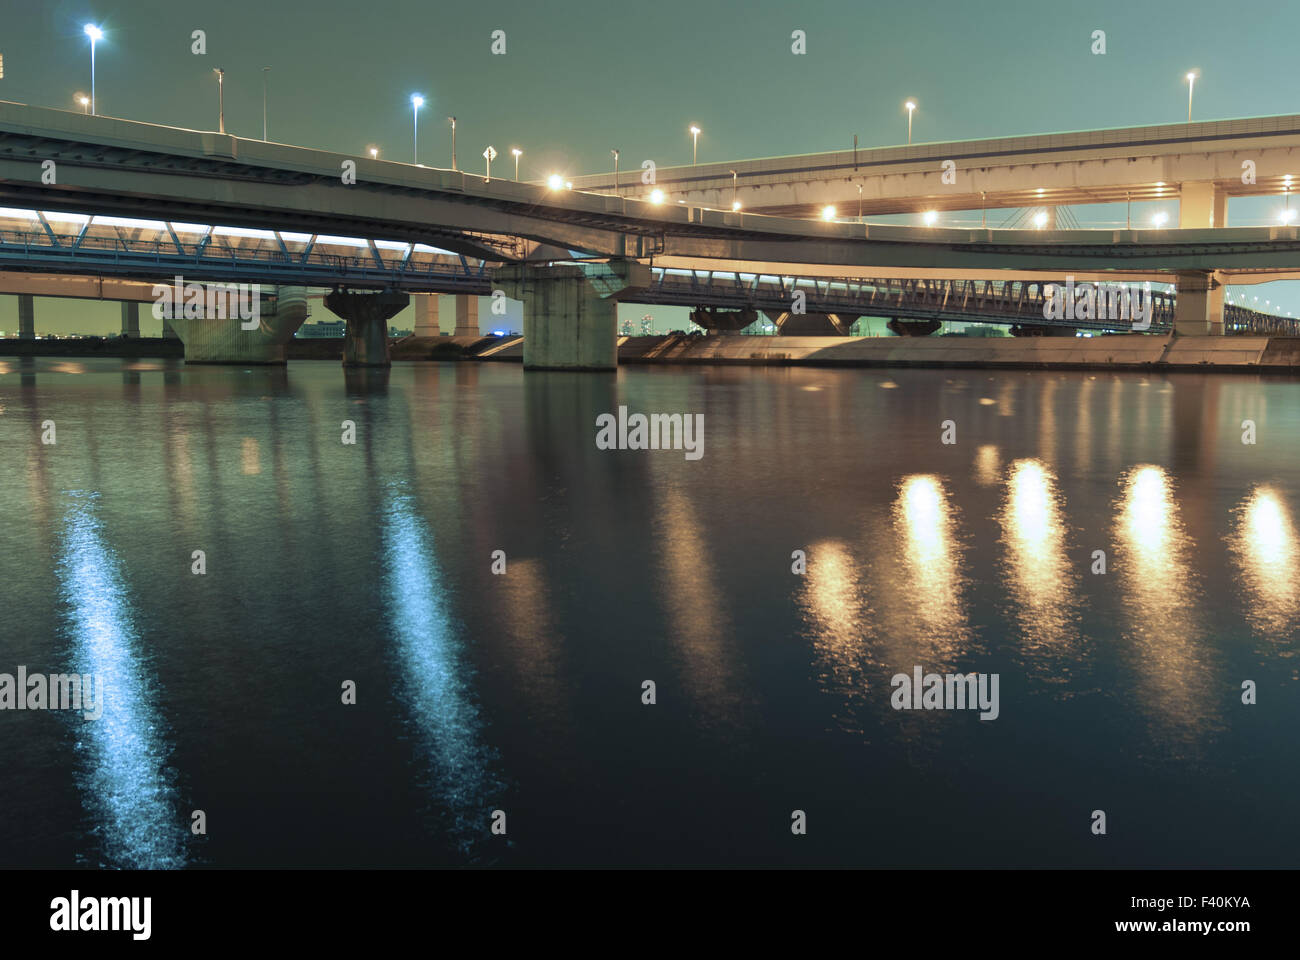 night highways - Stock Image